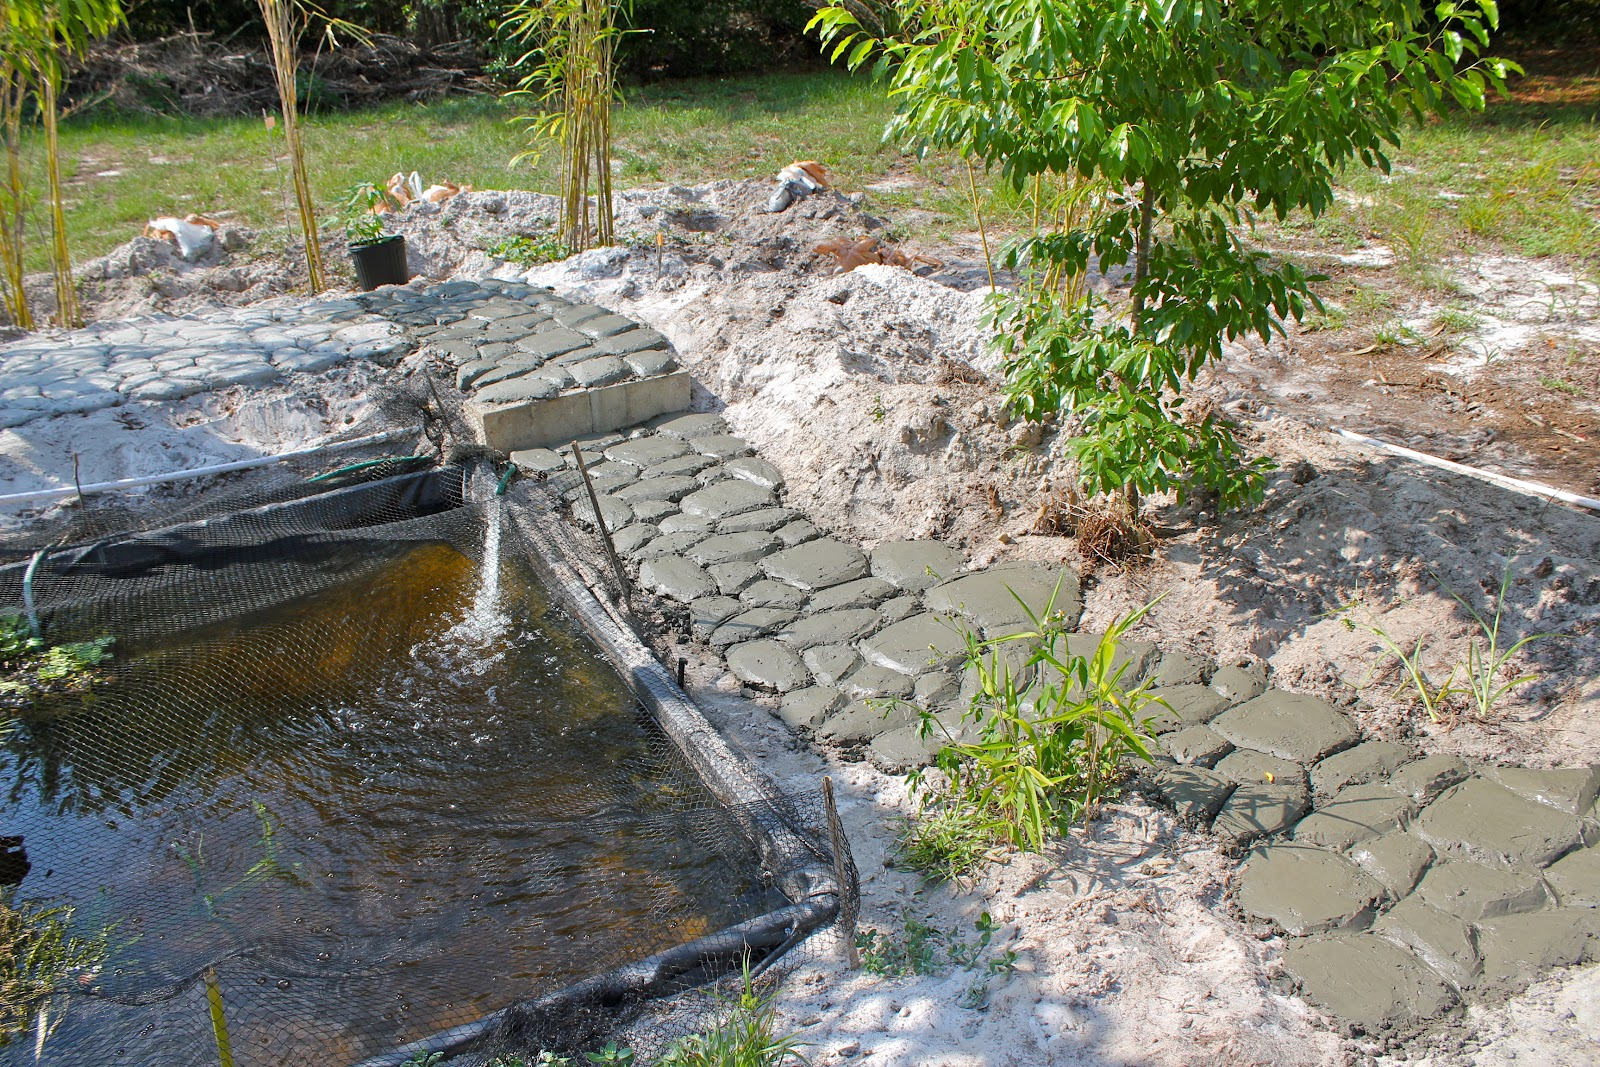 Fiercely hot florida phillip 39 s natural world for Concrete pond construction